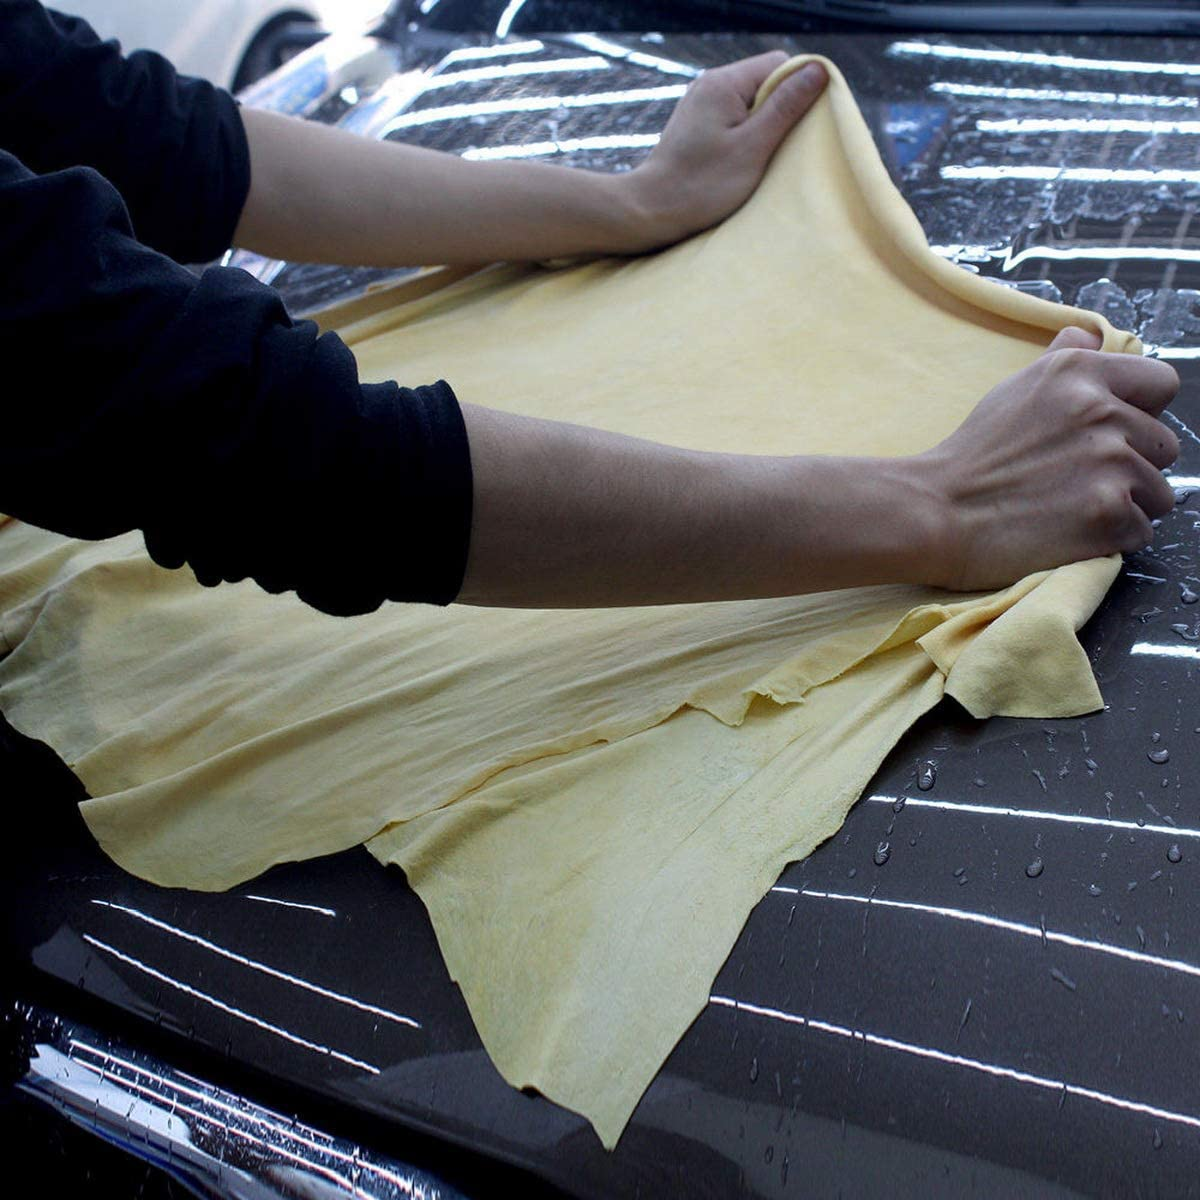 75X105cm Besttradestore Car Nature Chamois Real Leather Washing Cloth Cleaning Towel Wipes Clean Cham Large